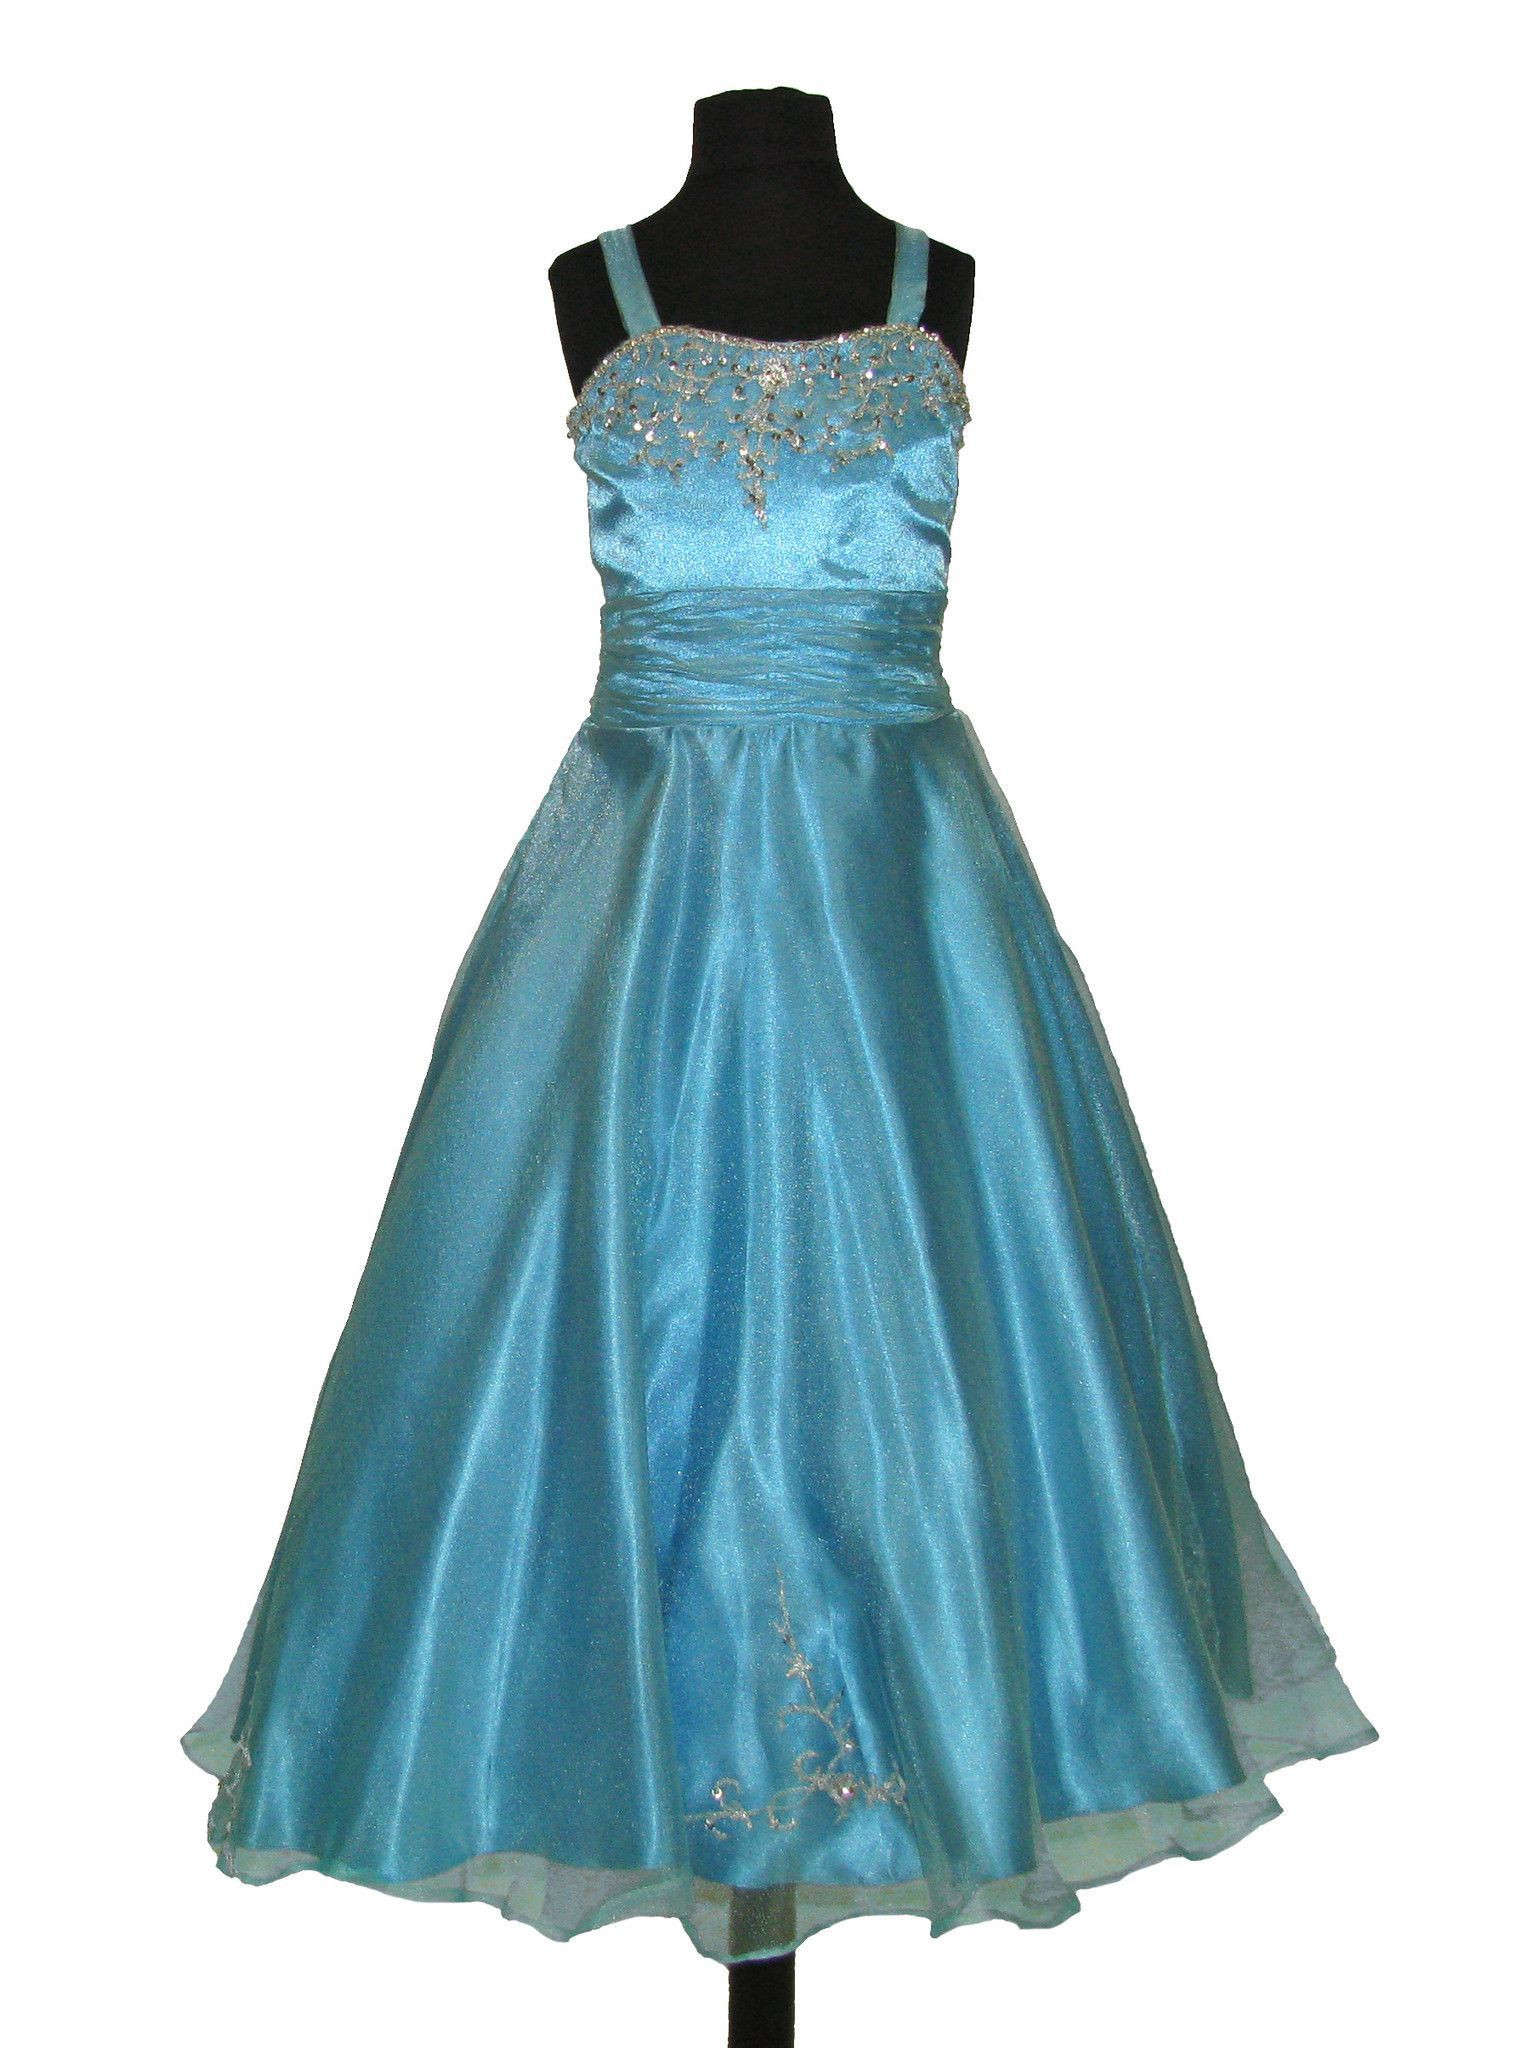 Tiffany princess girls pageant ball gown dress kids